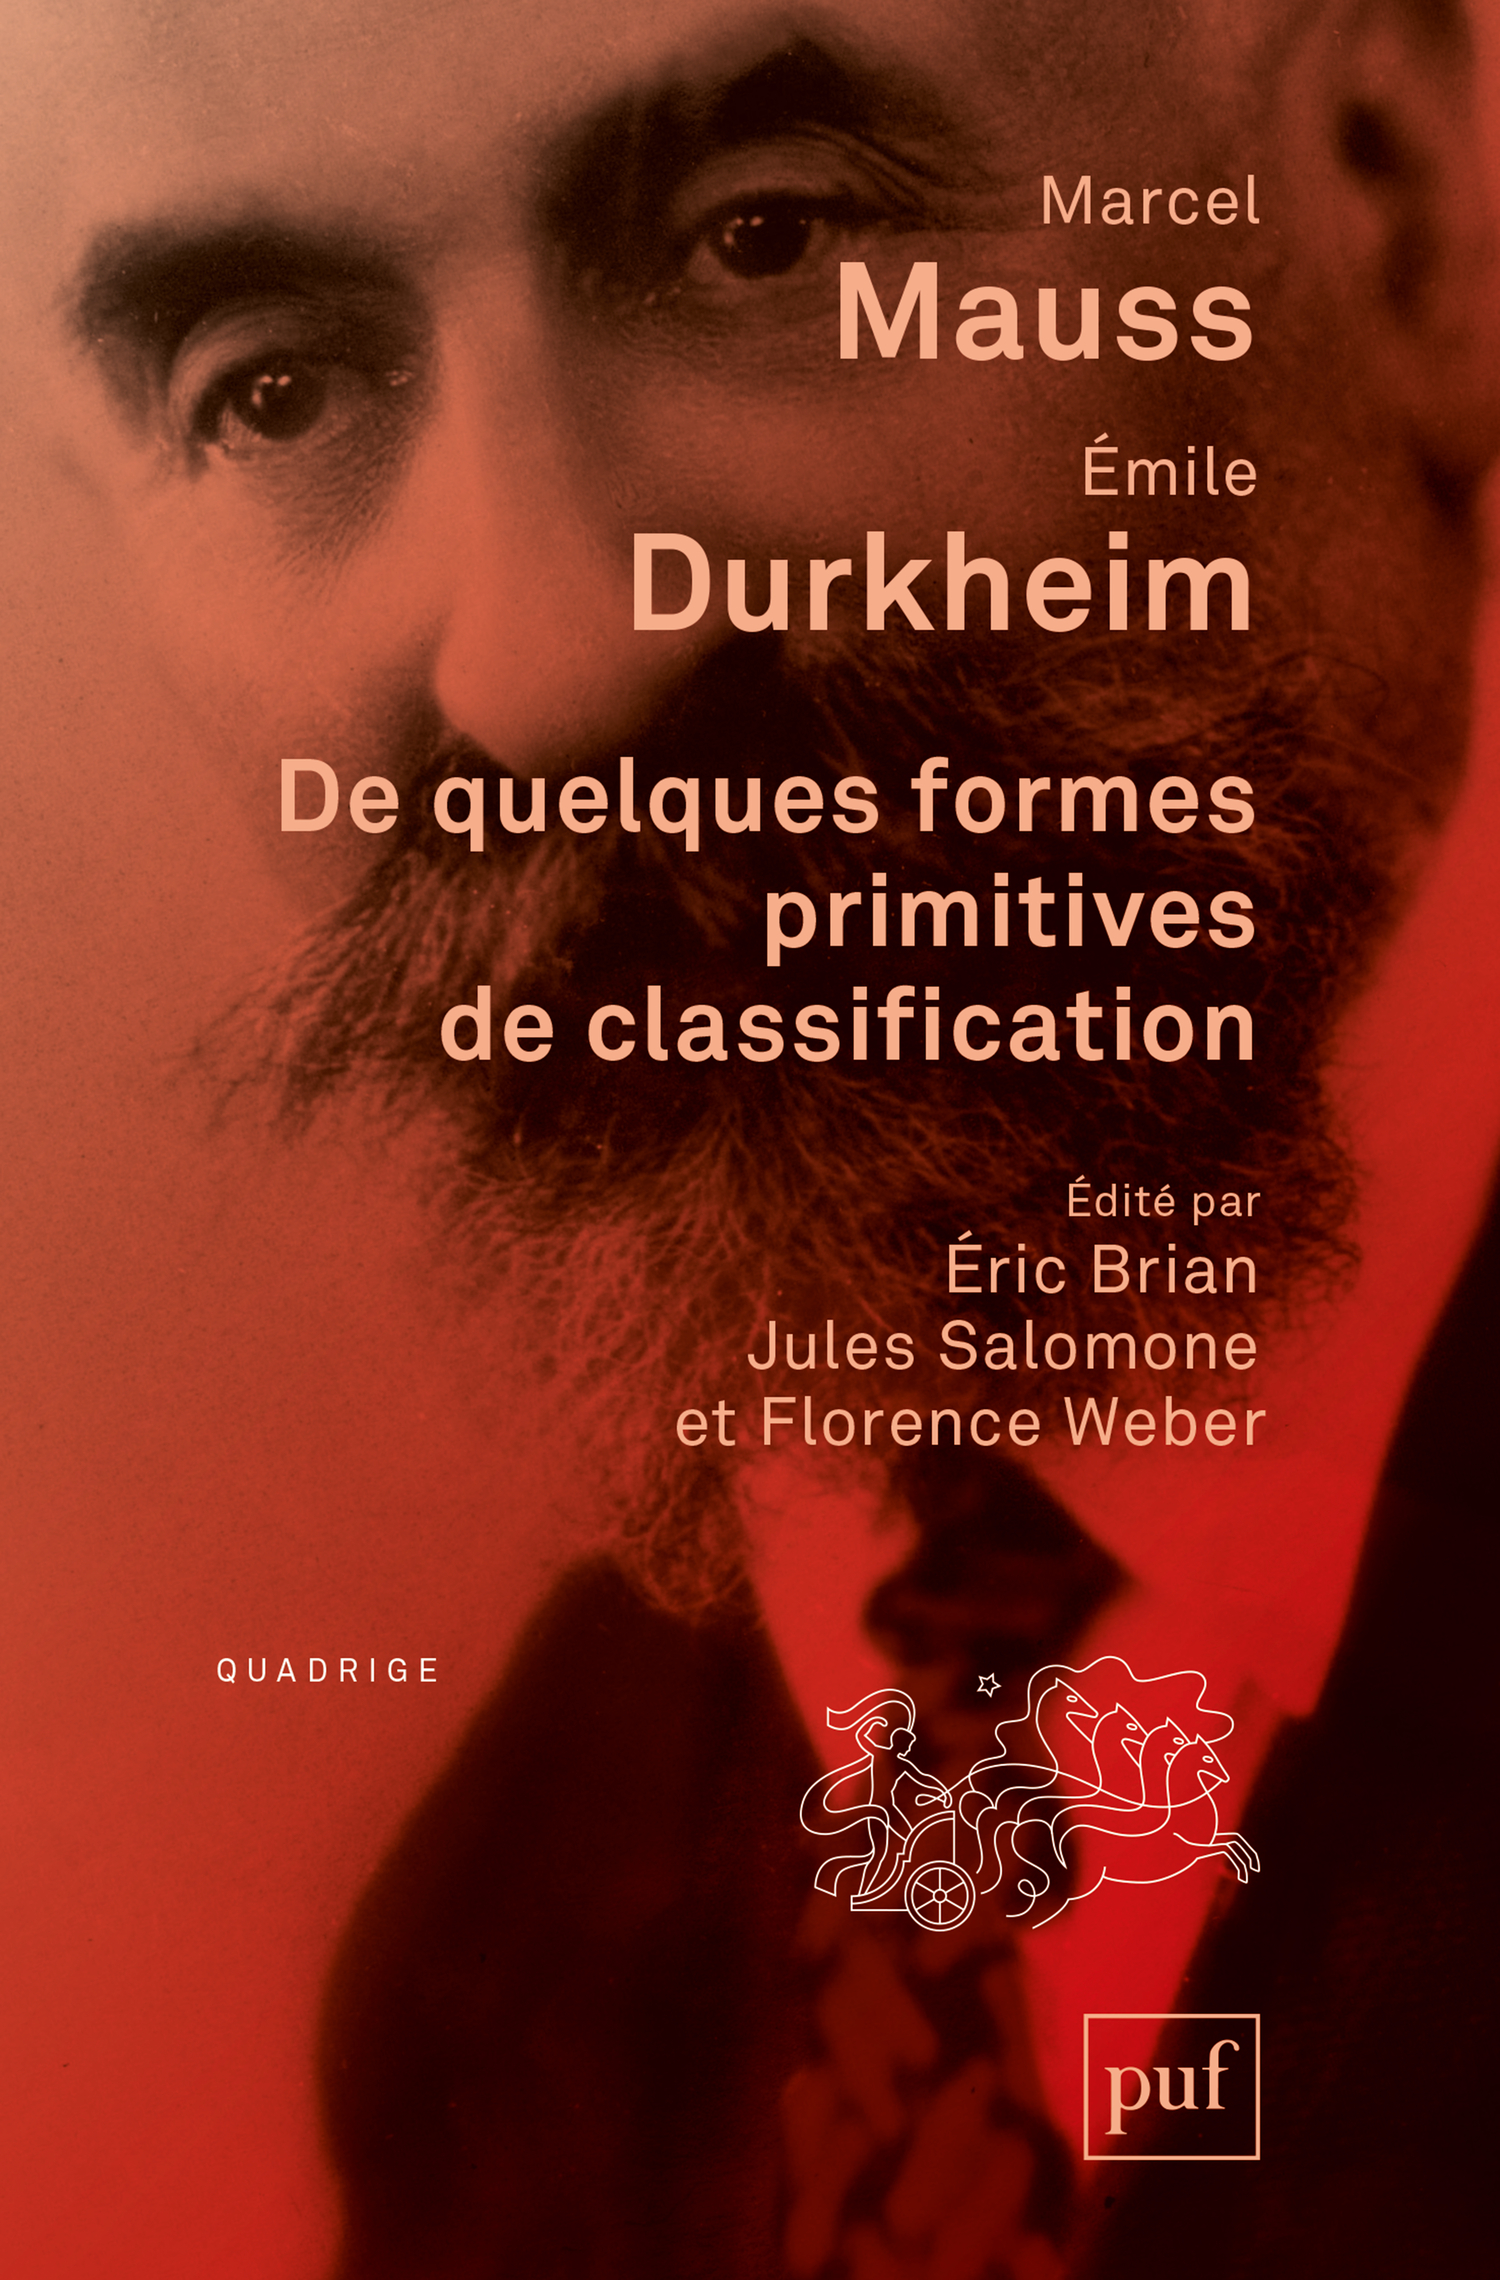 De quelques formes primitives de classification De Émile Durkheim et Marcel Mauss - Presses Universitaires de France